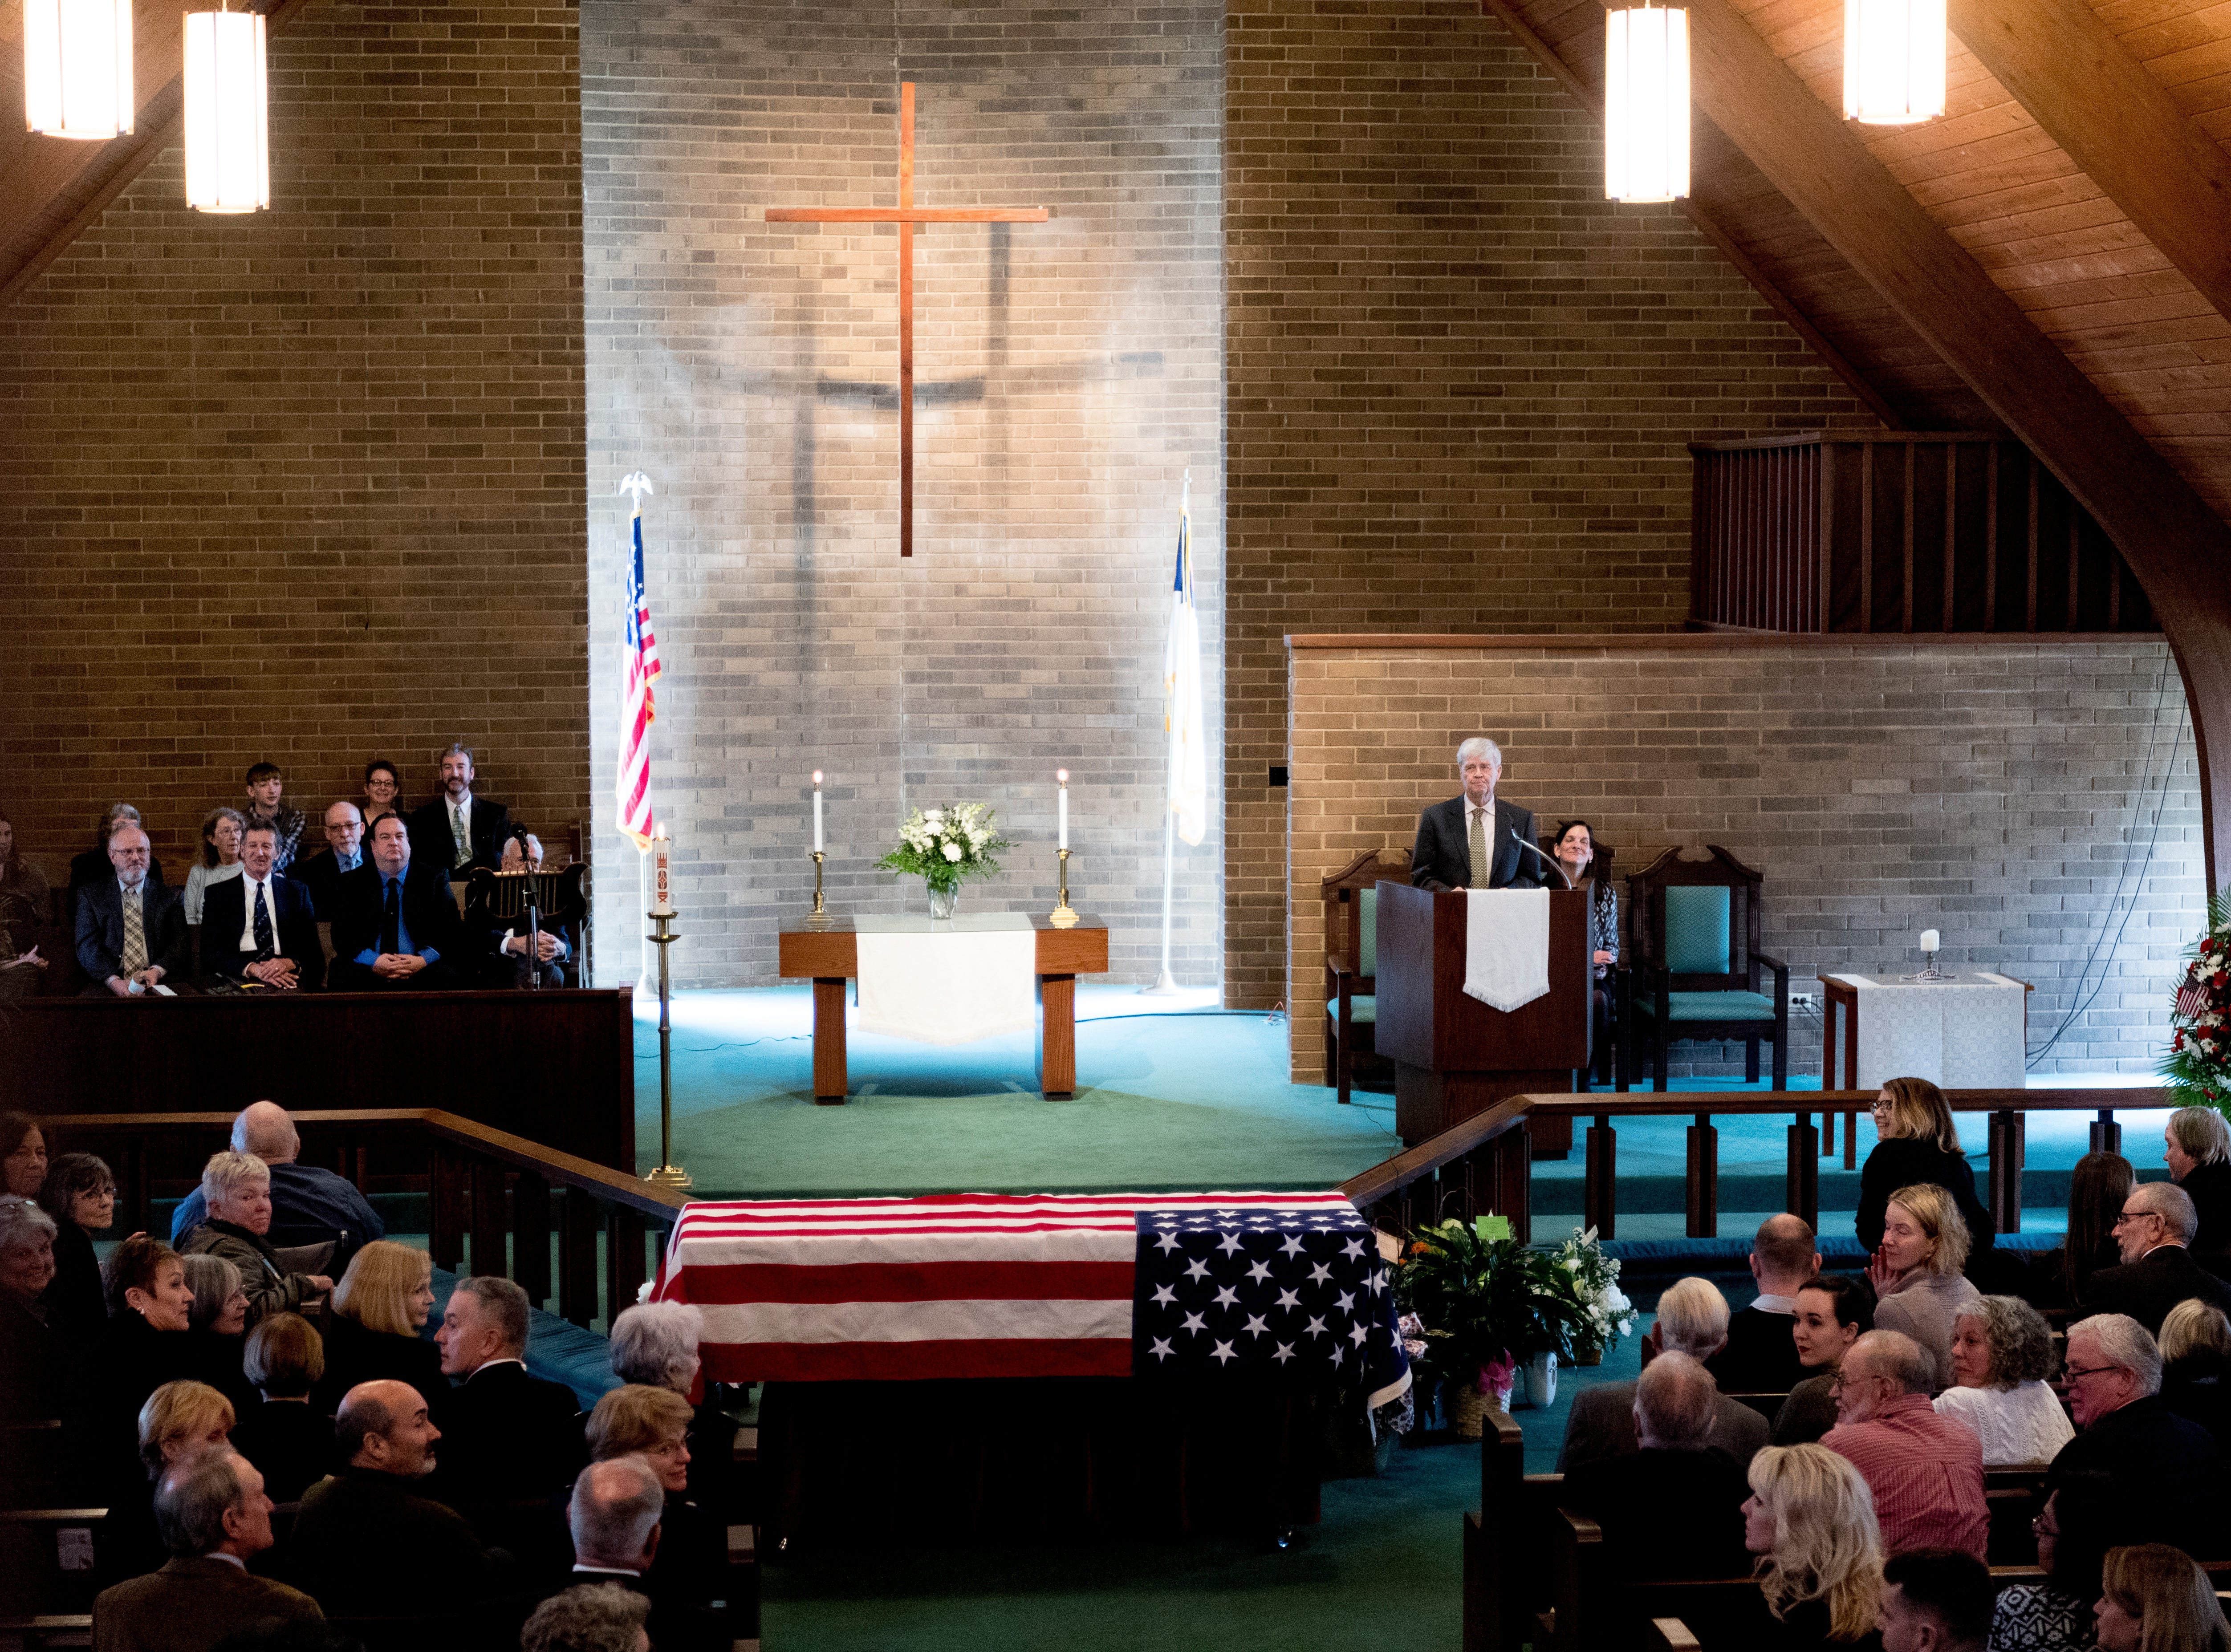 Tommy Mariner speaks during a funeral service for his wife Rosemary Mariner, the US Navy's first female fighter pilot, at Norris United Methodist Church in Norris, Tennessee on Saturday, February 2, 2019. Mariner died January 24th of cancer.